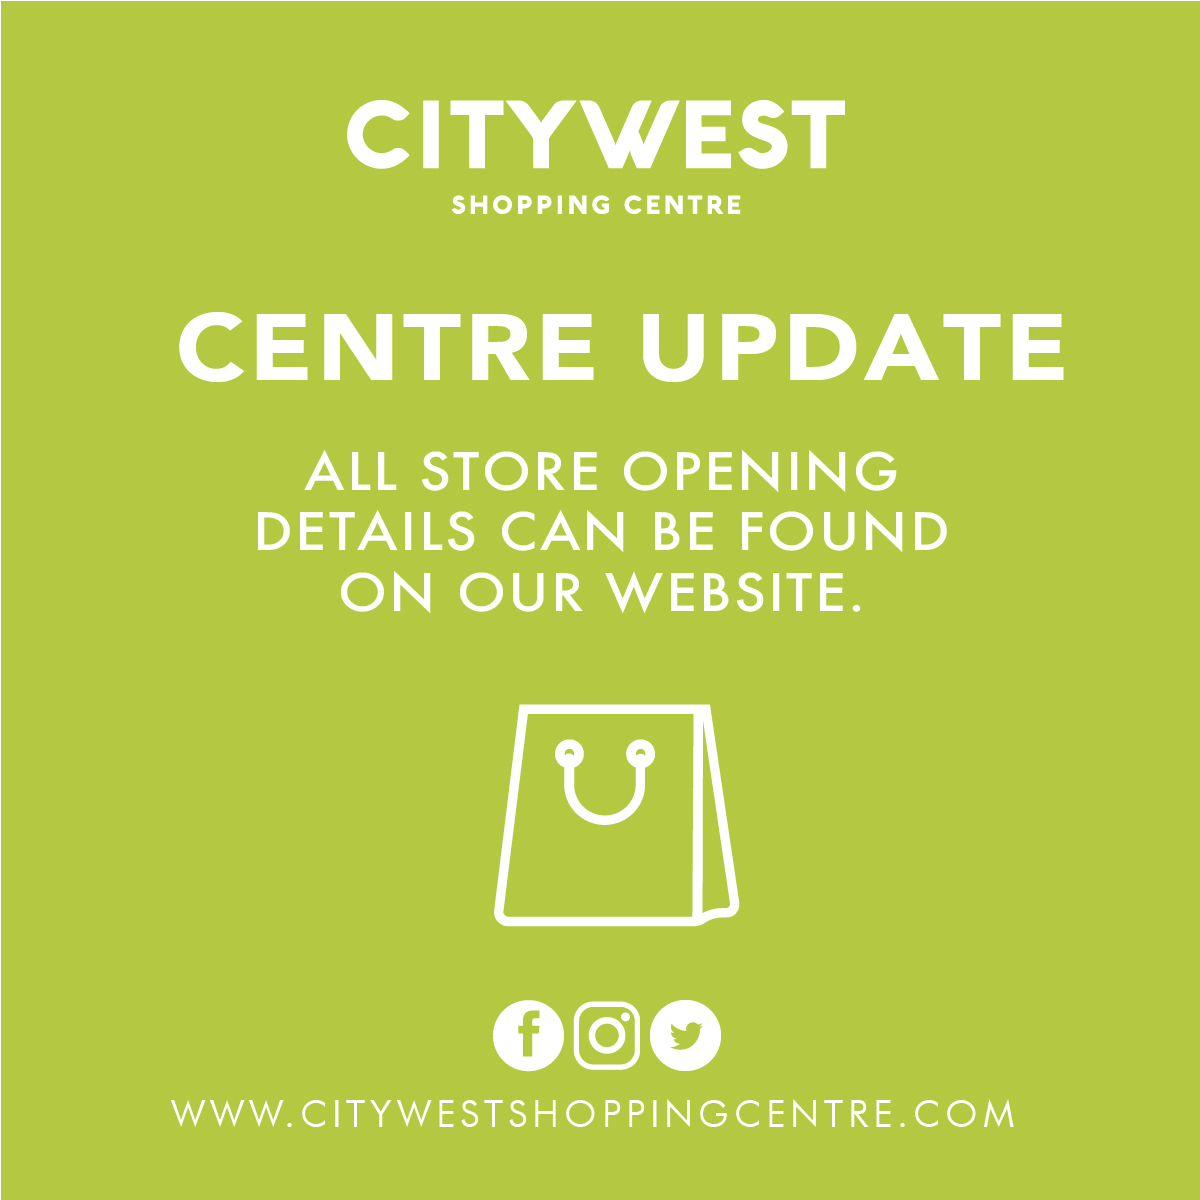 Stores open at Citywest Shopping Centre